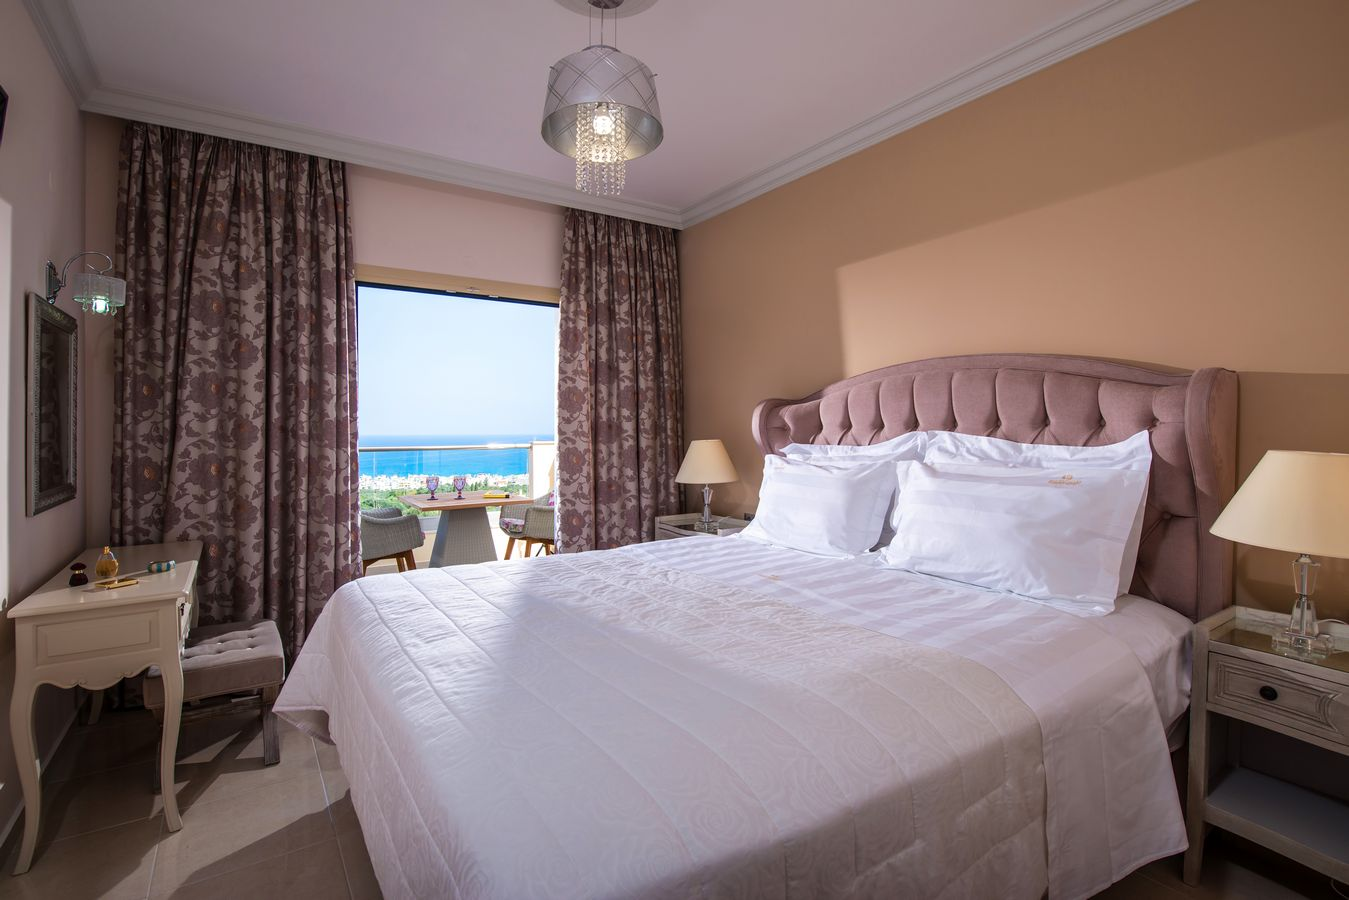 2 bedroom + 2 bathroom sea view suite master bedroom - Pilots Villas Hersonissos Crete